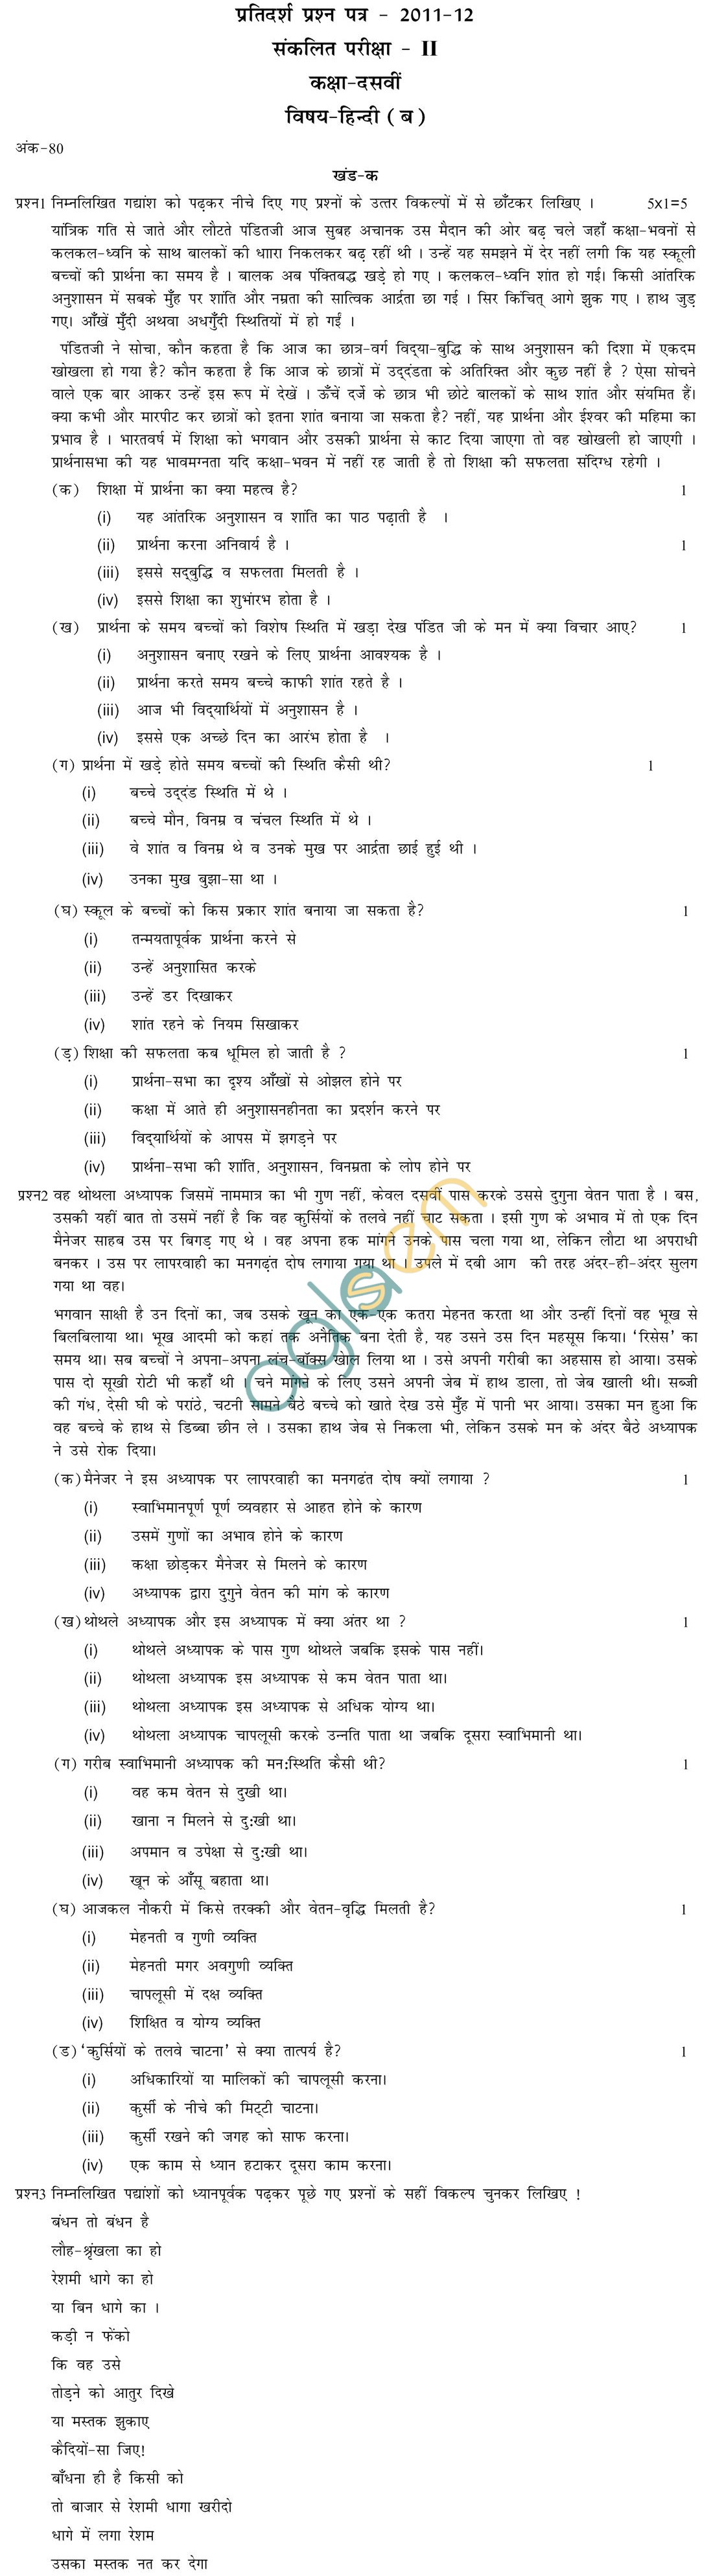 CBSE Board Exam 2013 Sample Papers (SA2) Class X - Hindi – B